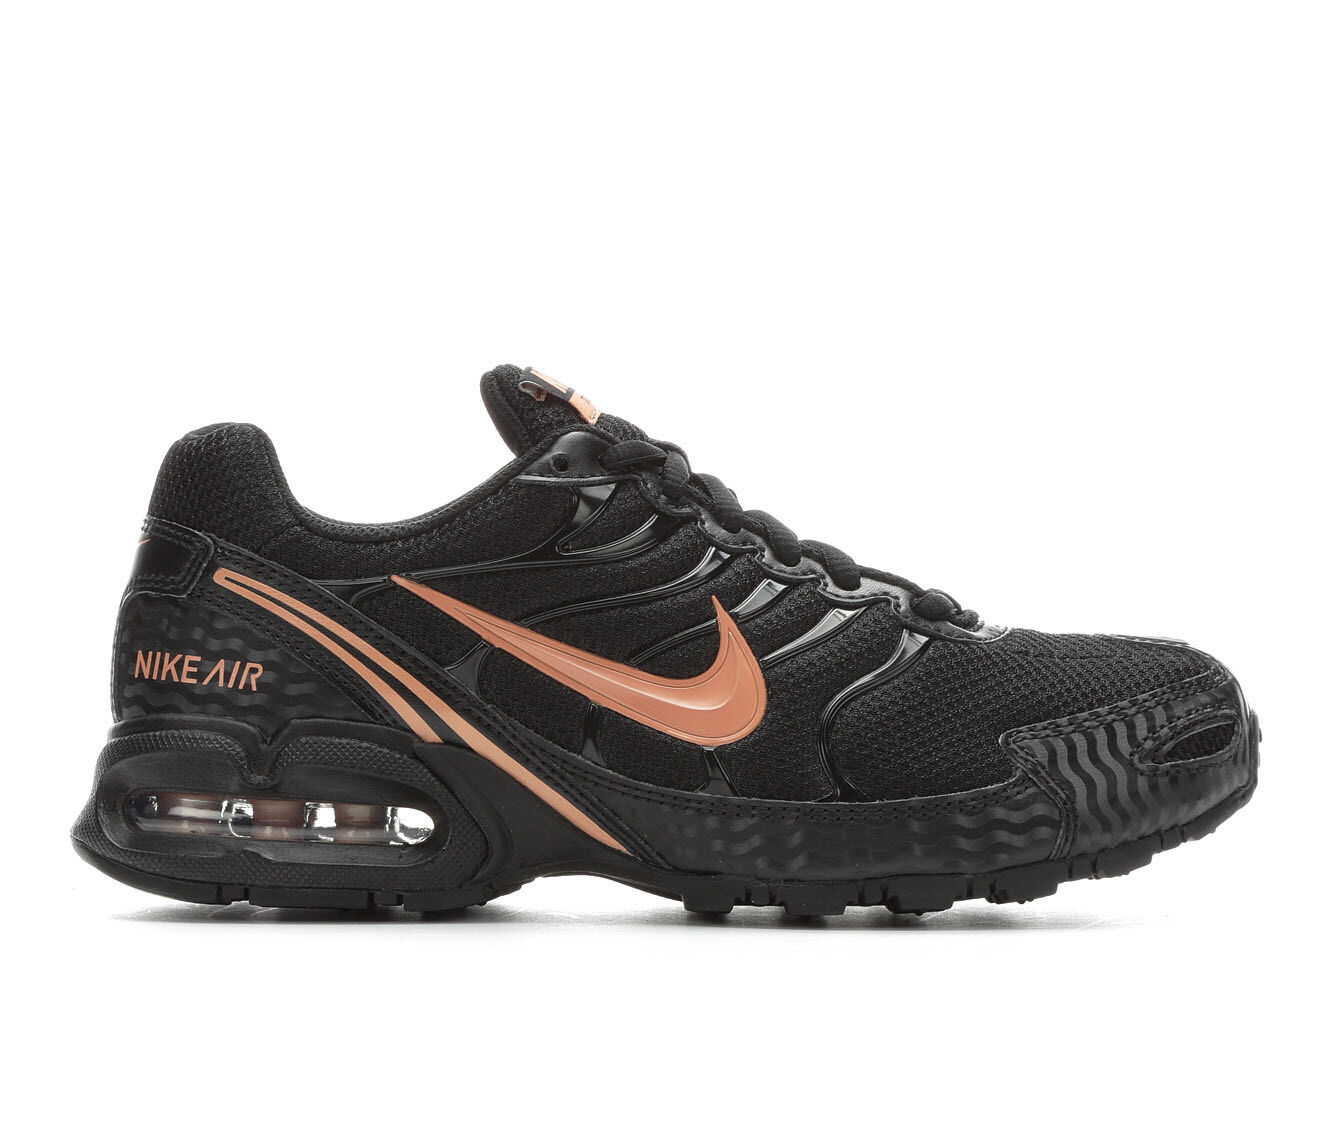 8ccd00fbfe438 20+ Womens Nike Air Max Torch Pictures and Ideas on Meta Networks